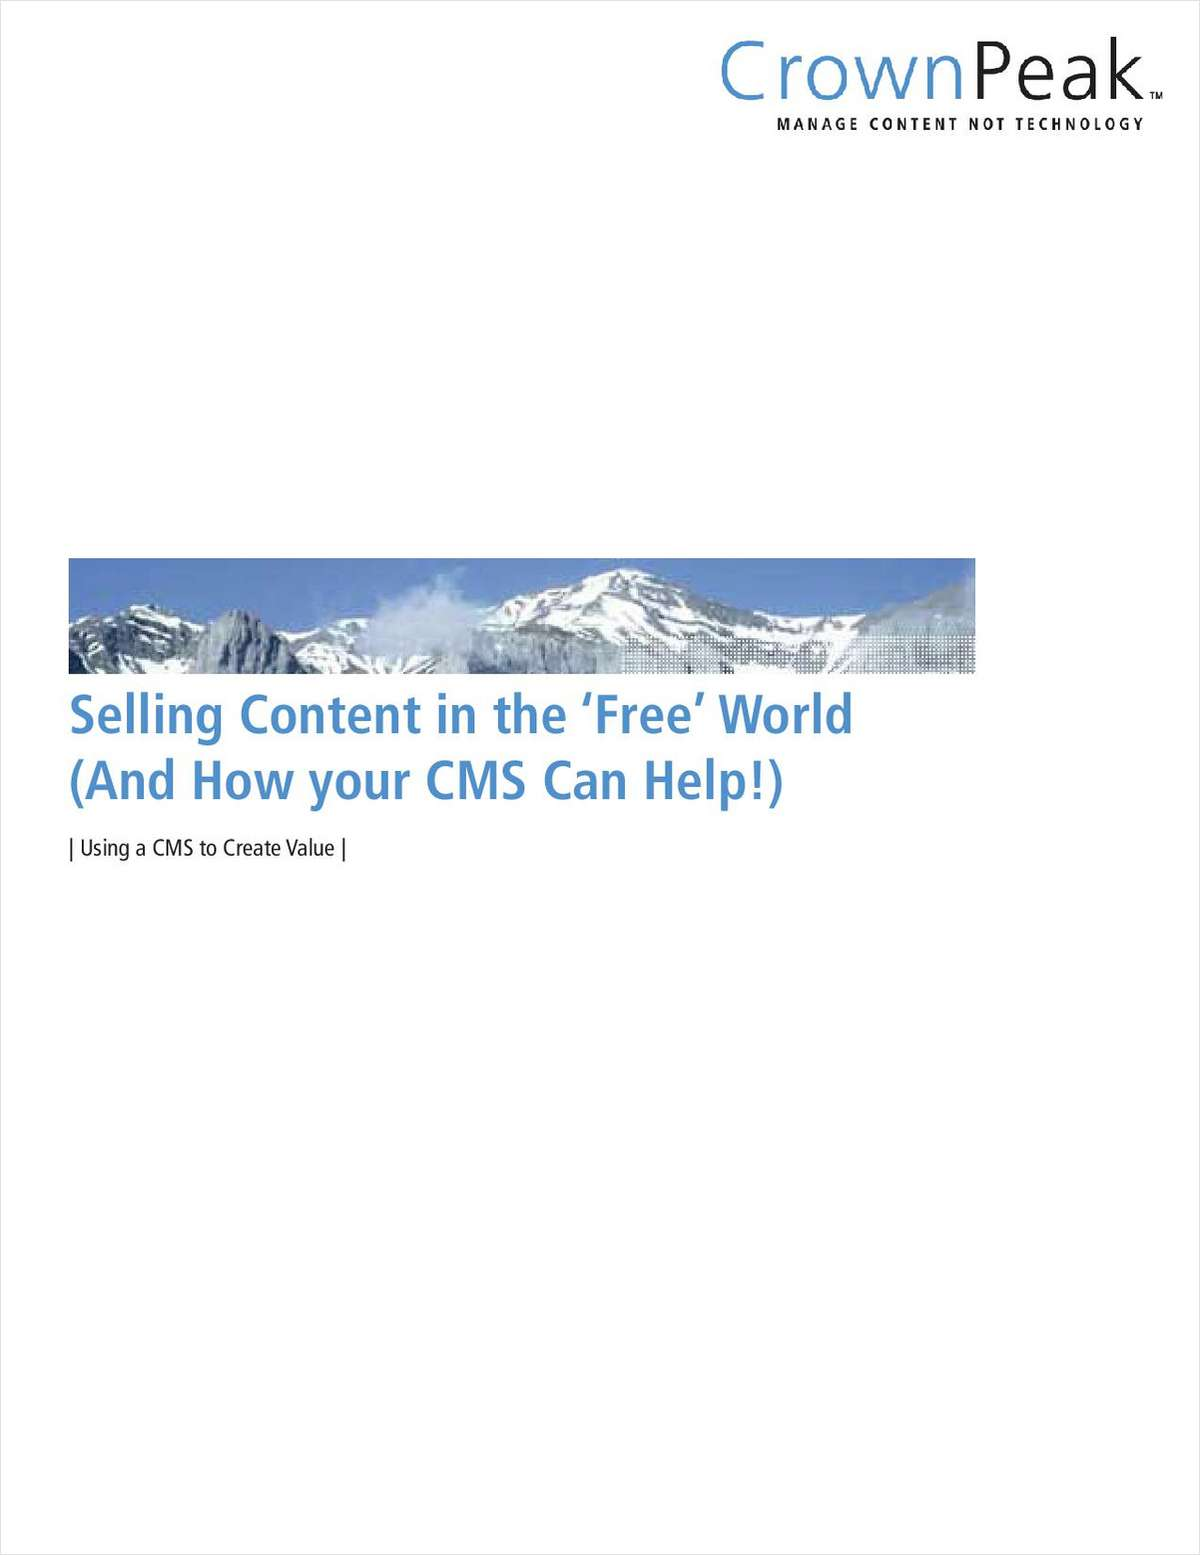 Selling Content in the 'Free World' and How your CMS Can Help!